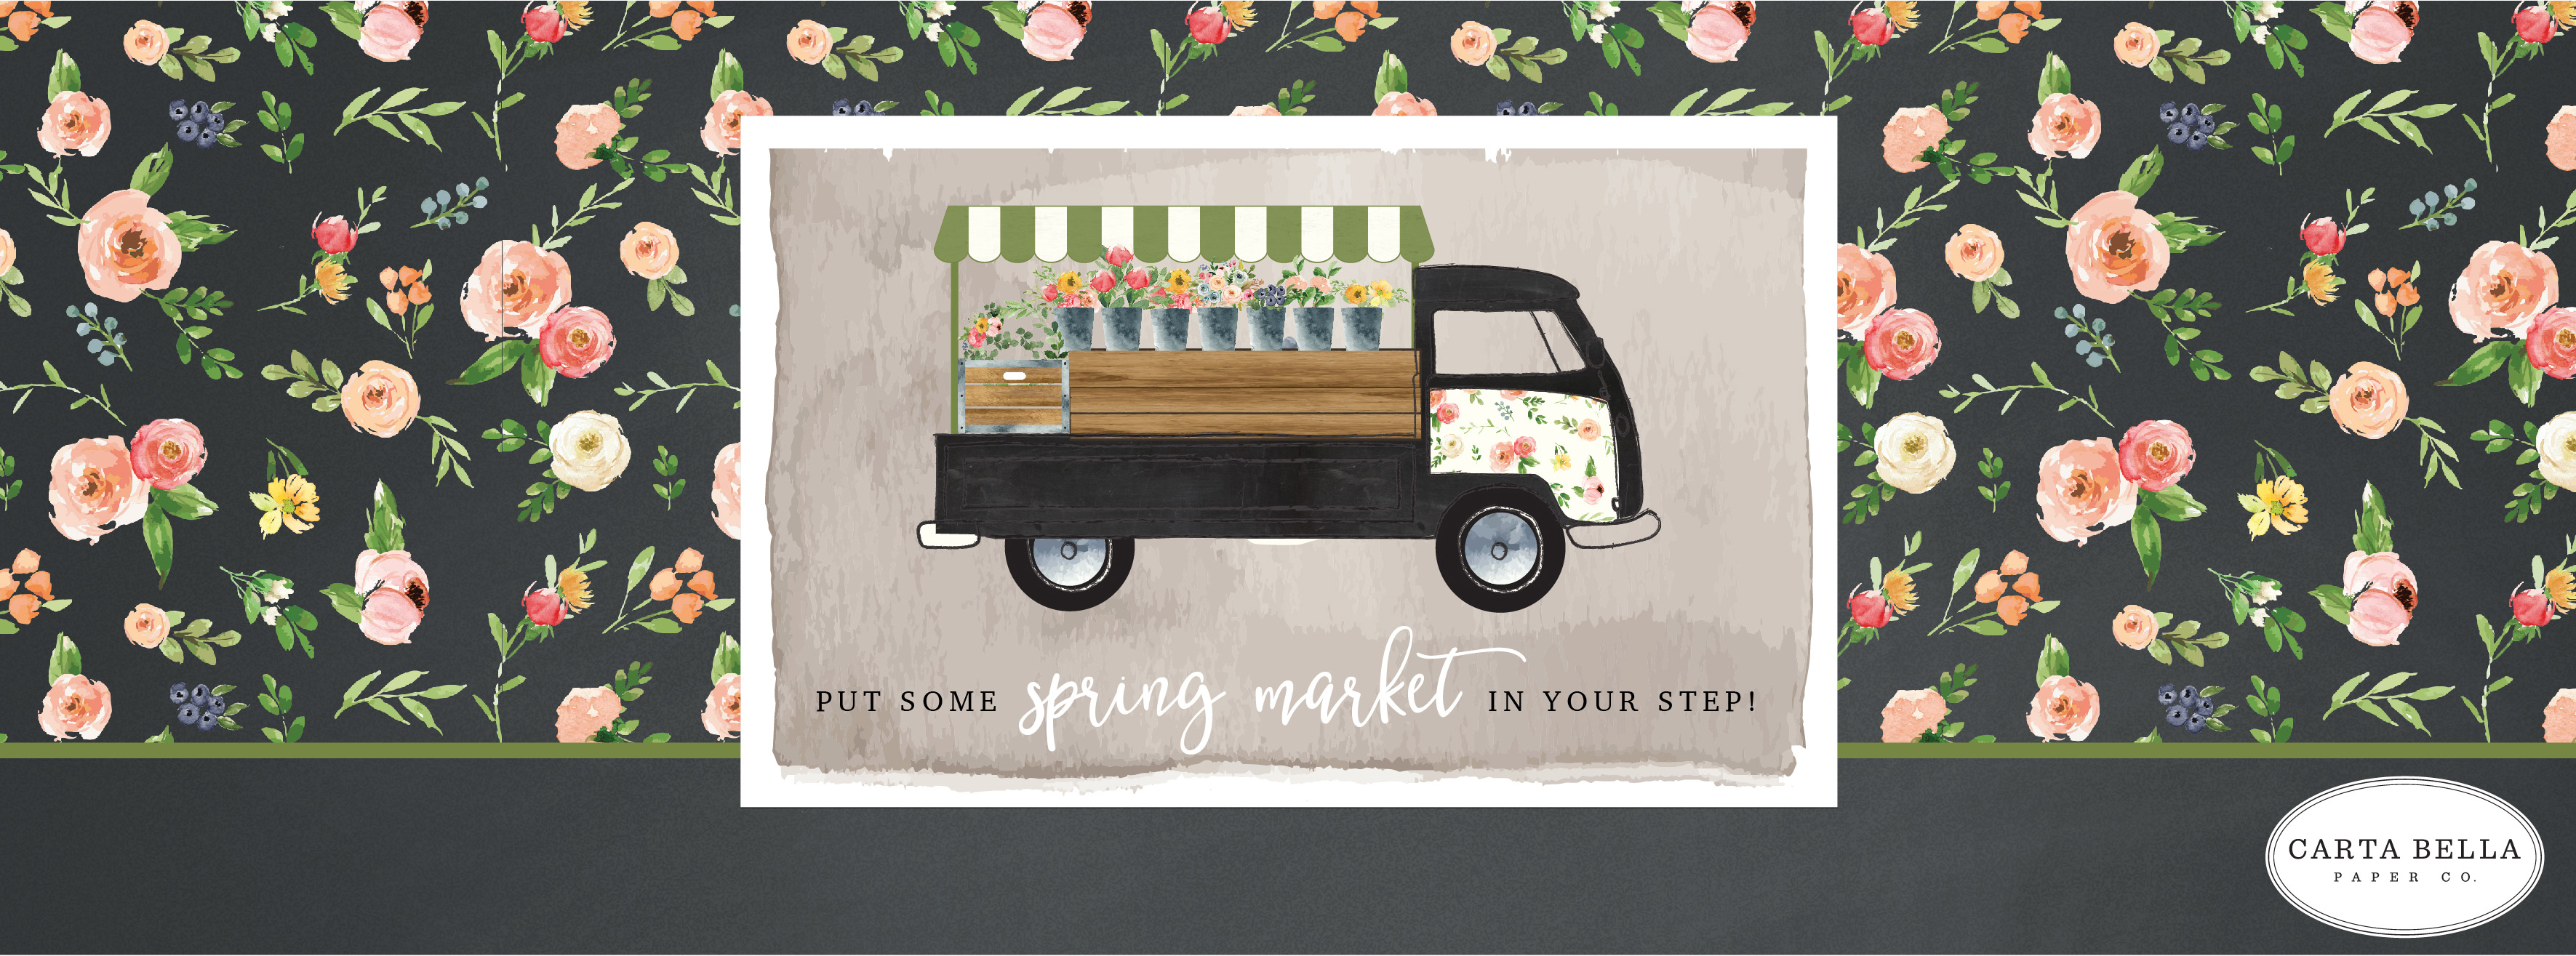 spring-market-banner-final-cb-facebook-copy.jpg